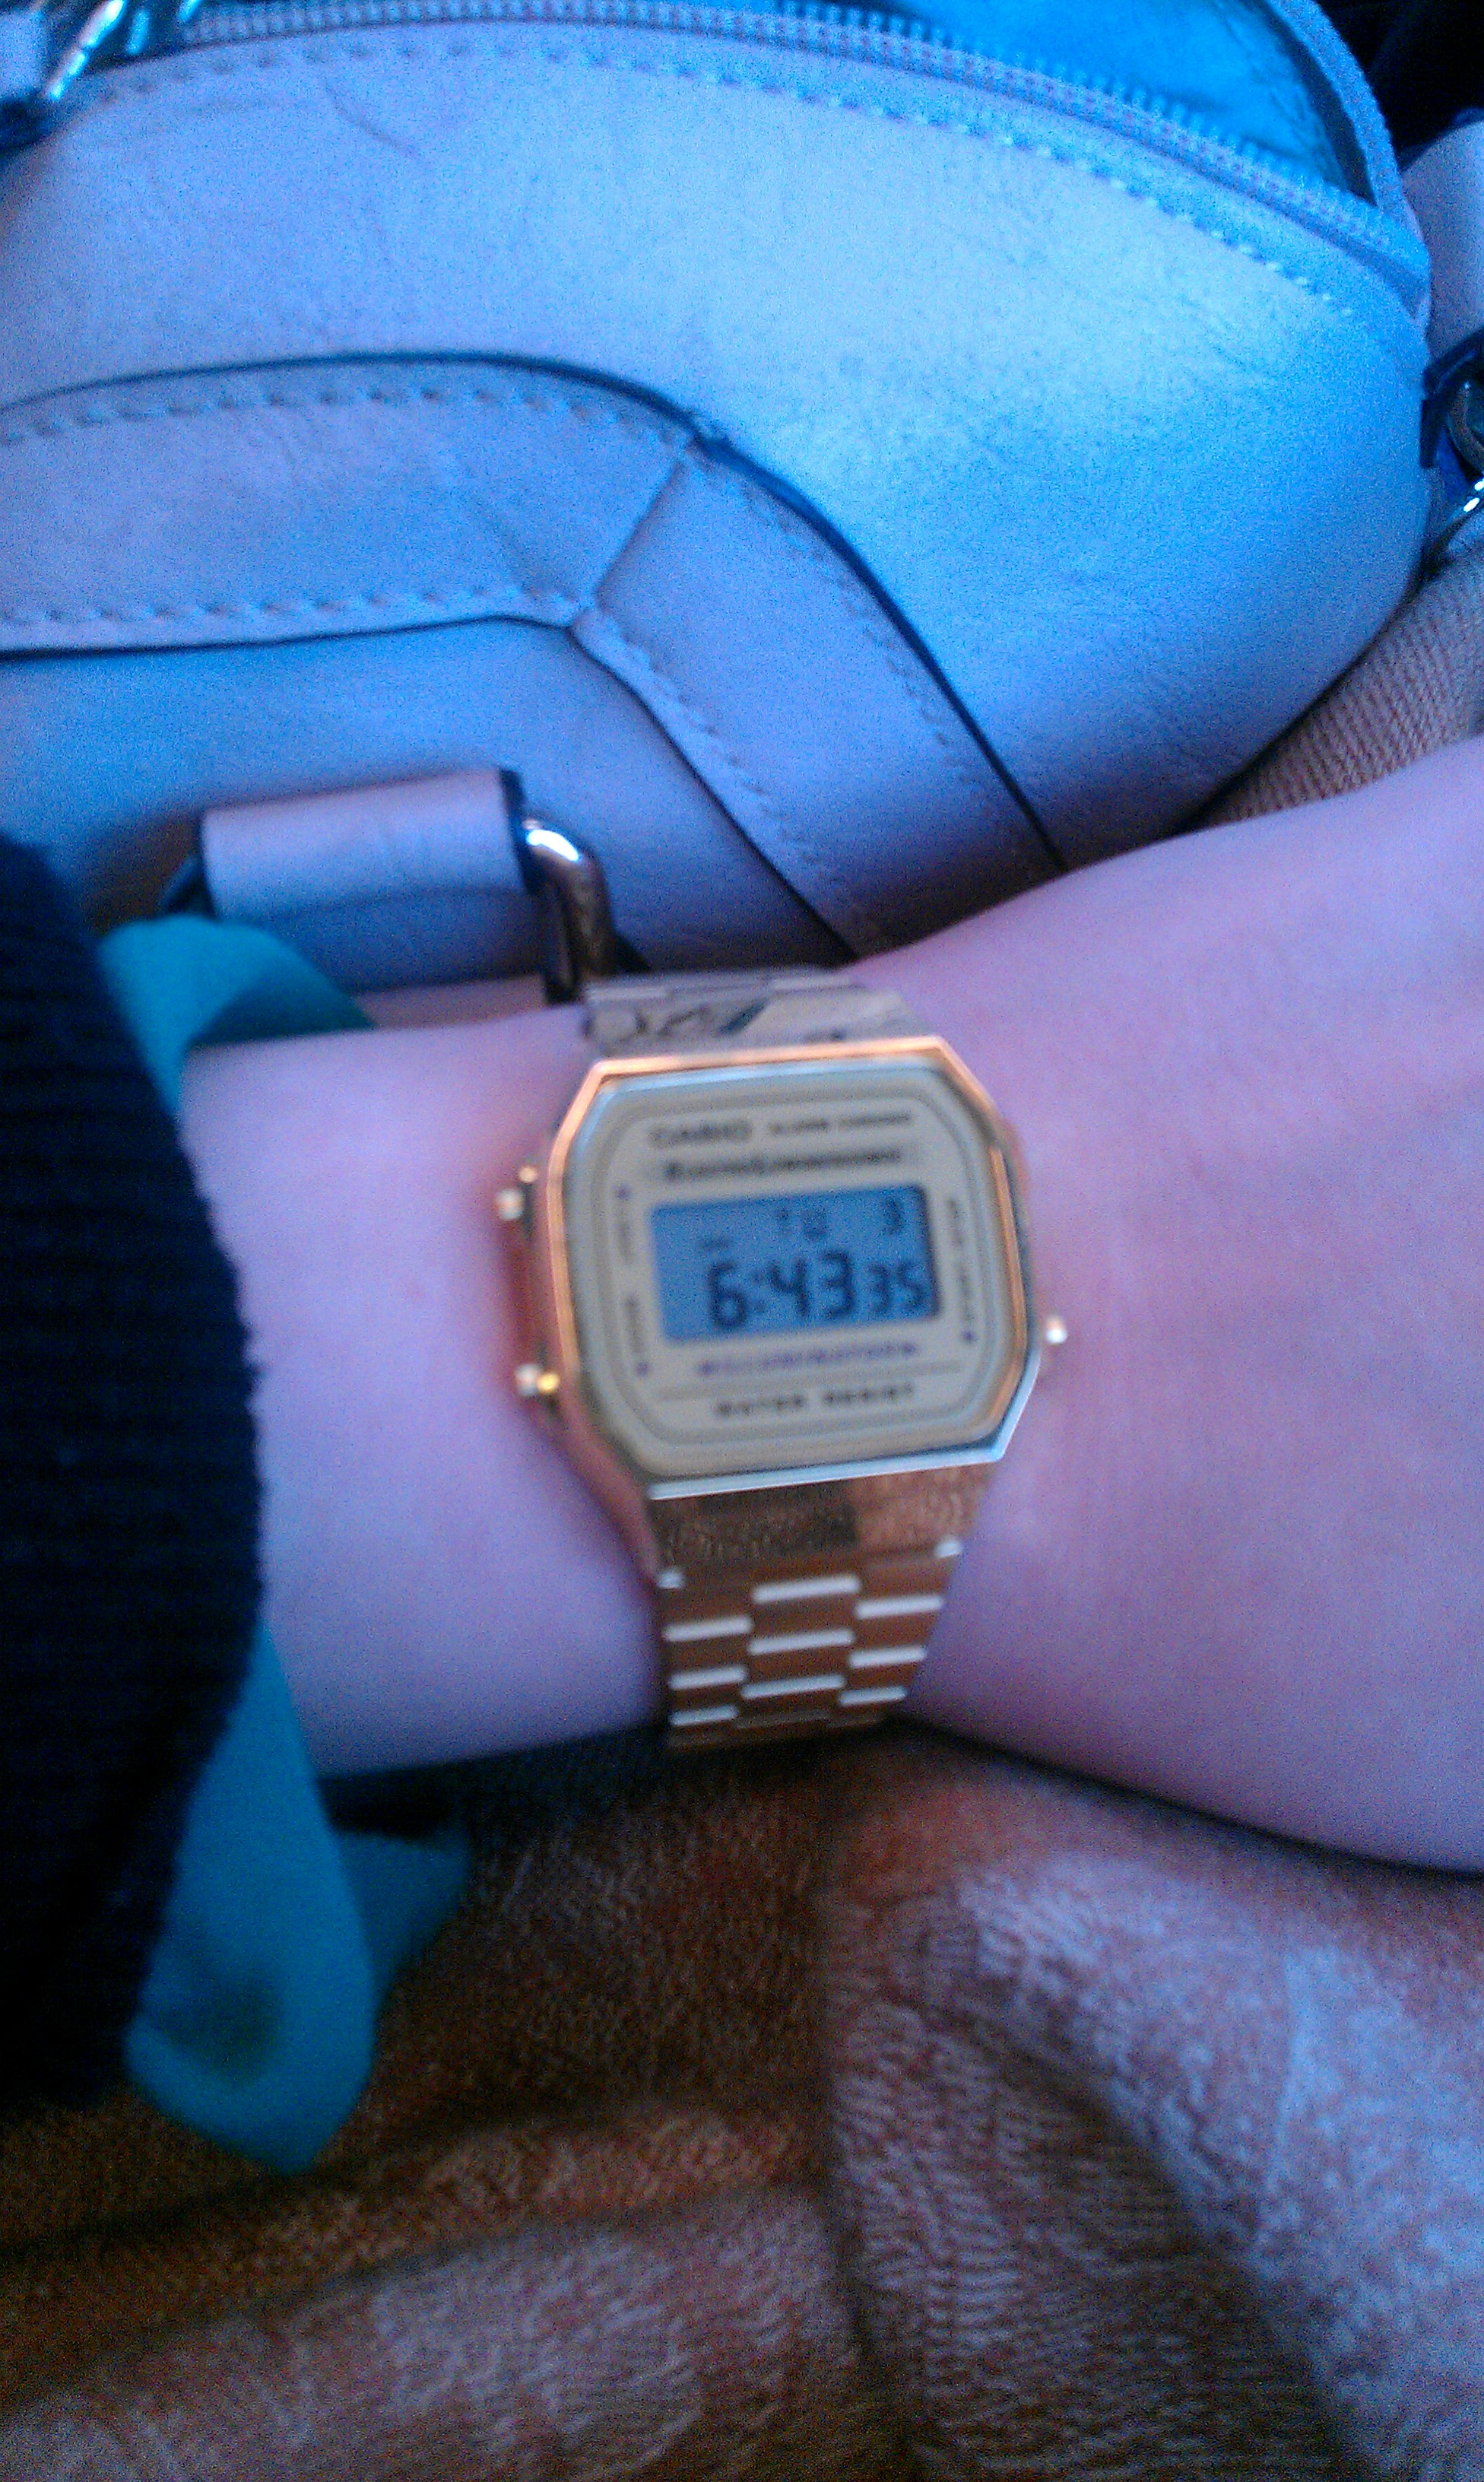 Unisex Casio Classic Leisure Alarm Chronograph Watch A168wg 9ef Fossil Bridgette Mini Stainless Steel Am 4352 I Absolutely In Love With This Bought It About A Week Ago And Have Not Taken Off Havent To Worry Doing The Dishes Etc Because Its